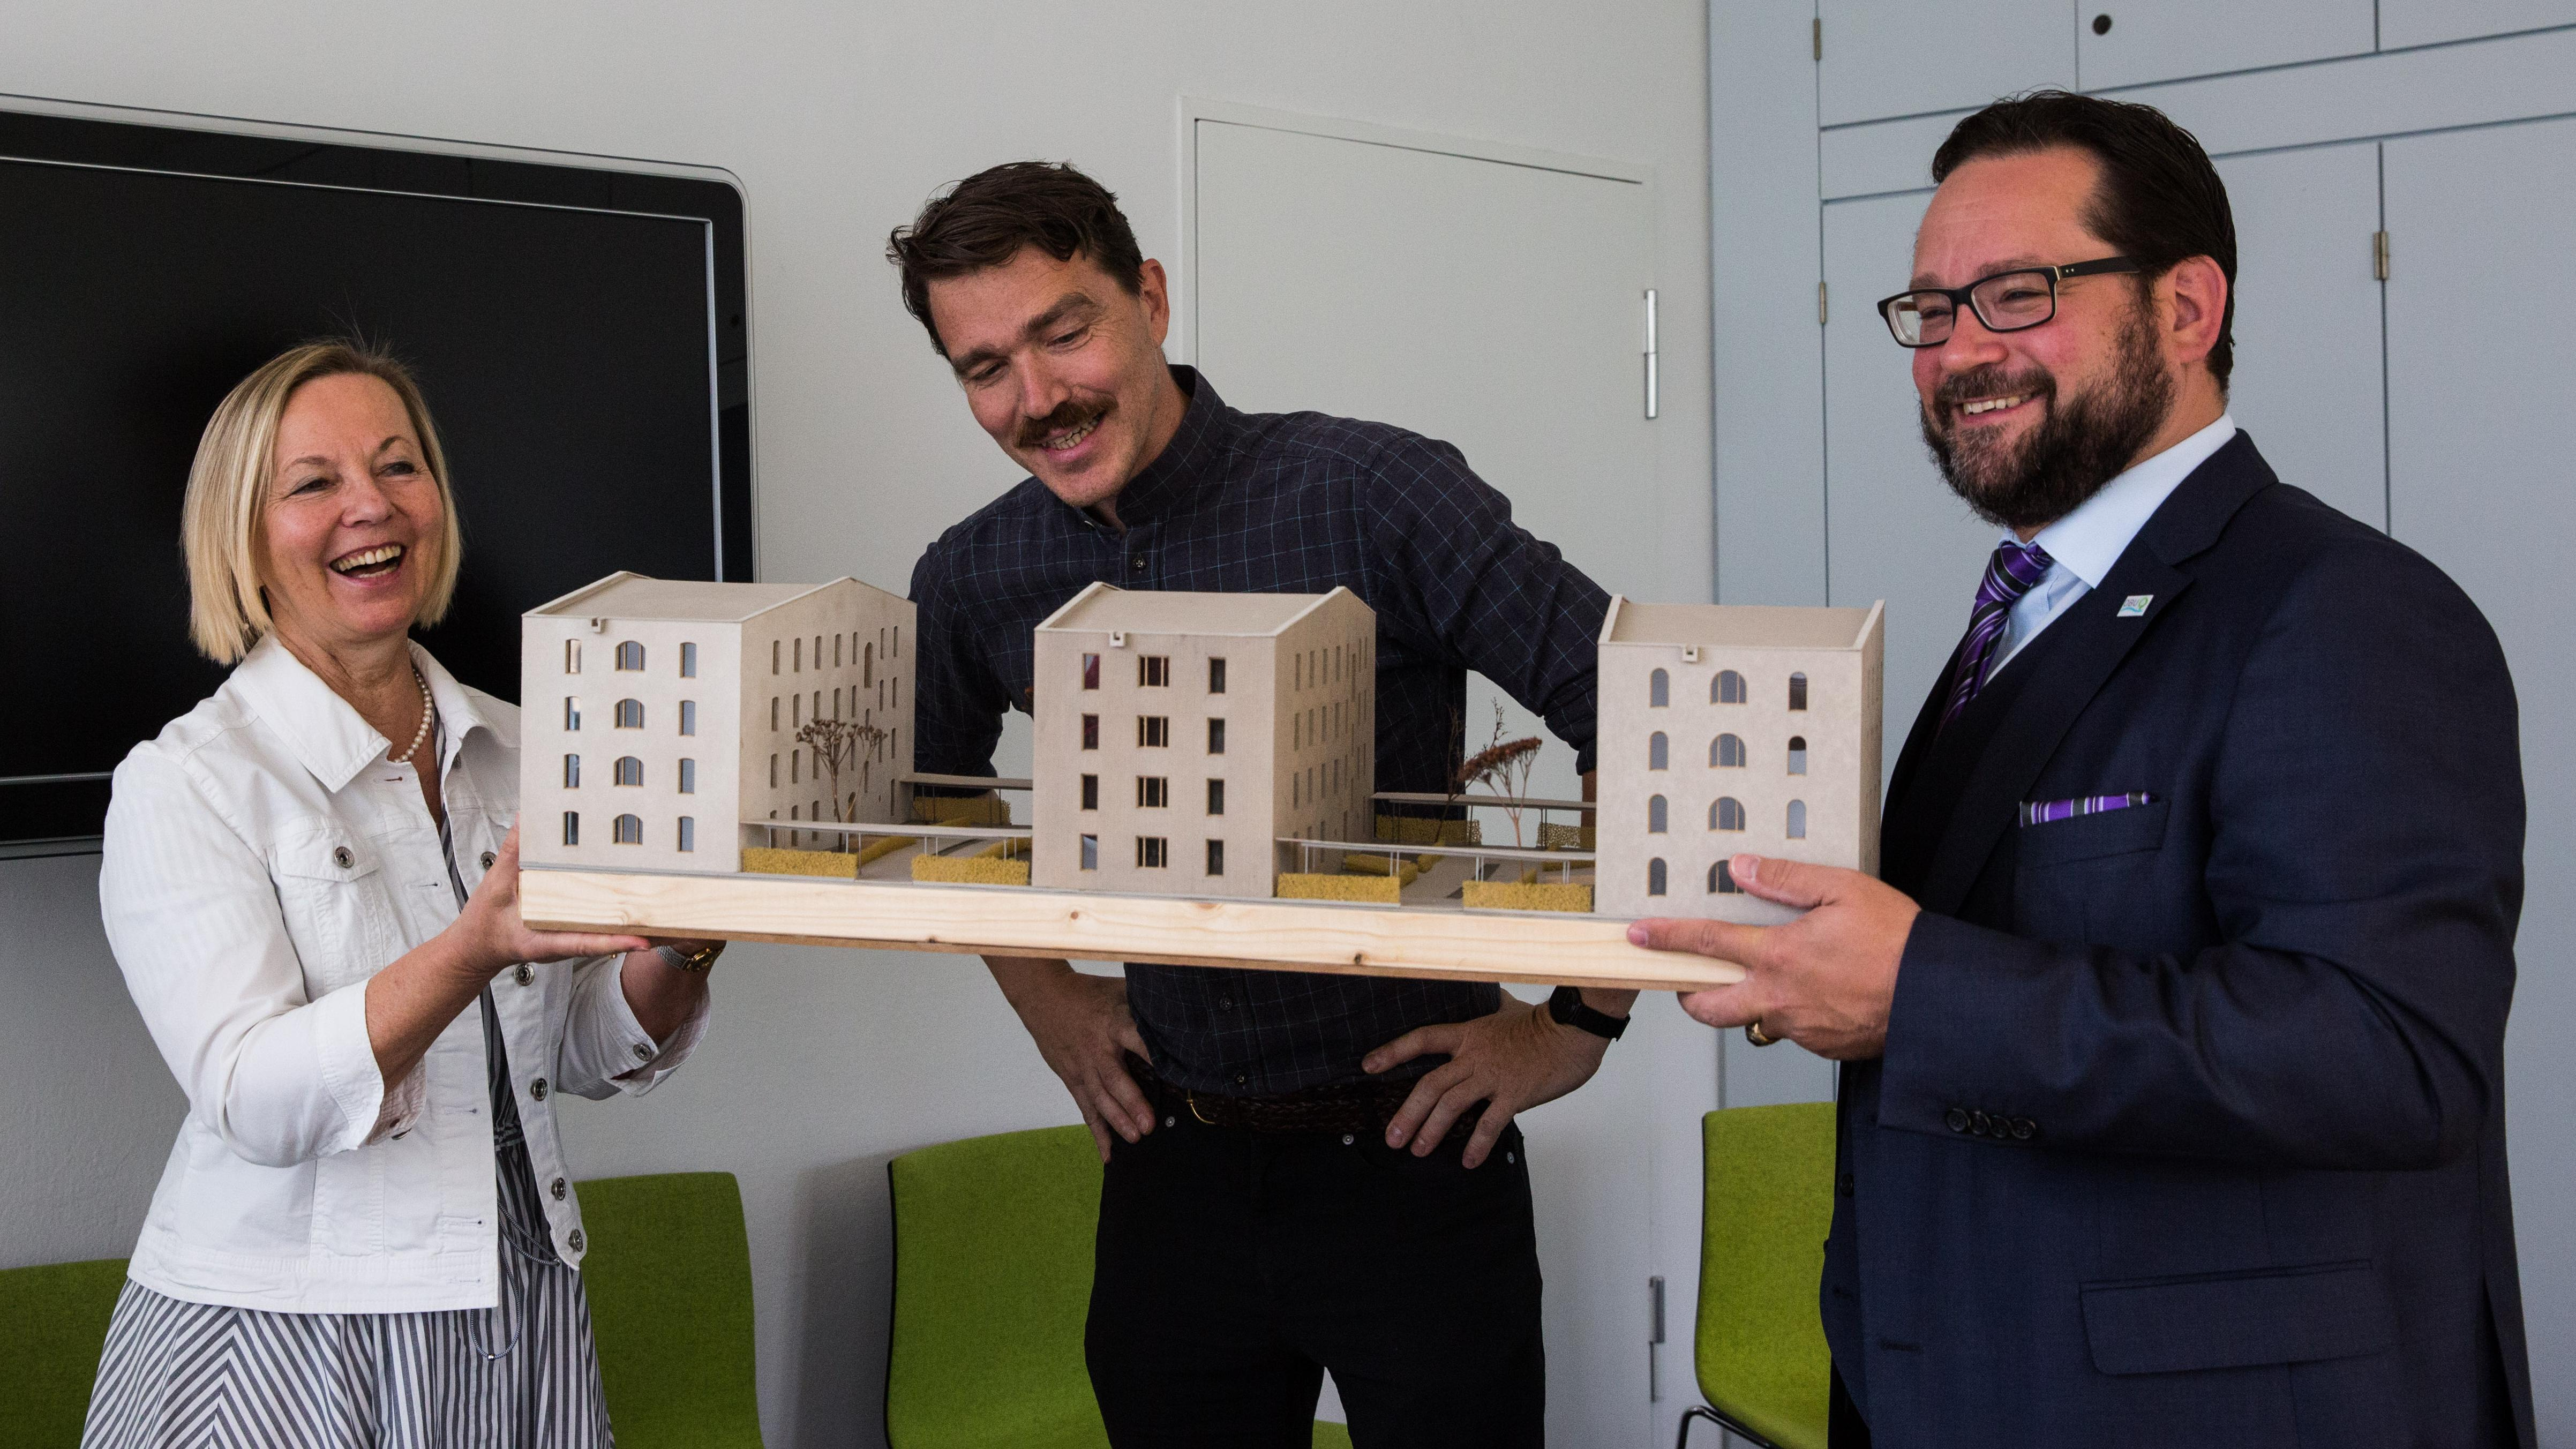 Dr. Ursula Wurzer-Faßnacht, architect Tilmann Jarmer and Alexander Bonde (from left to right) with a model of the houses in Garching.